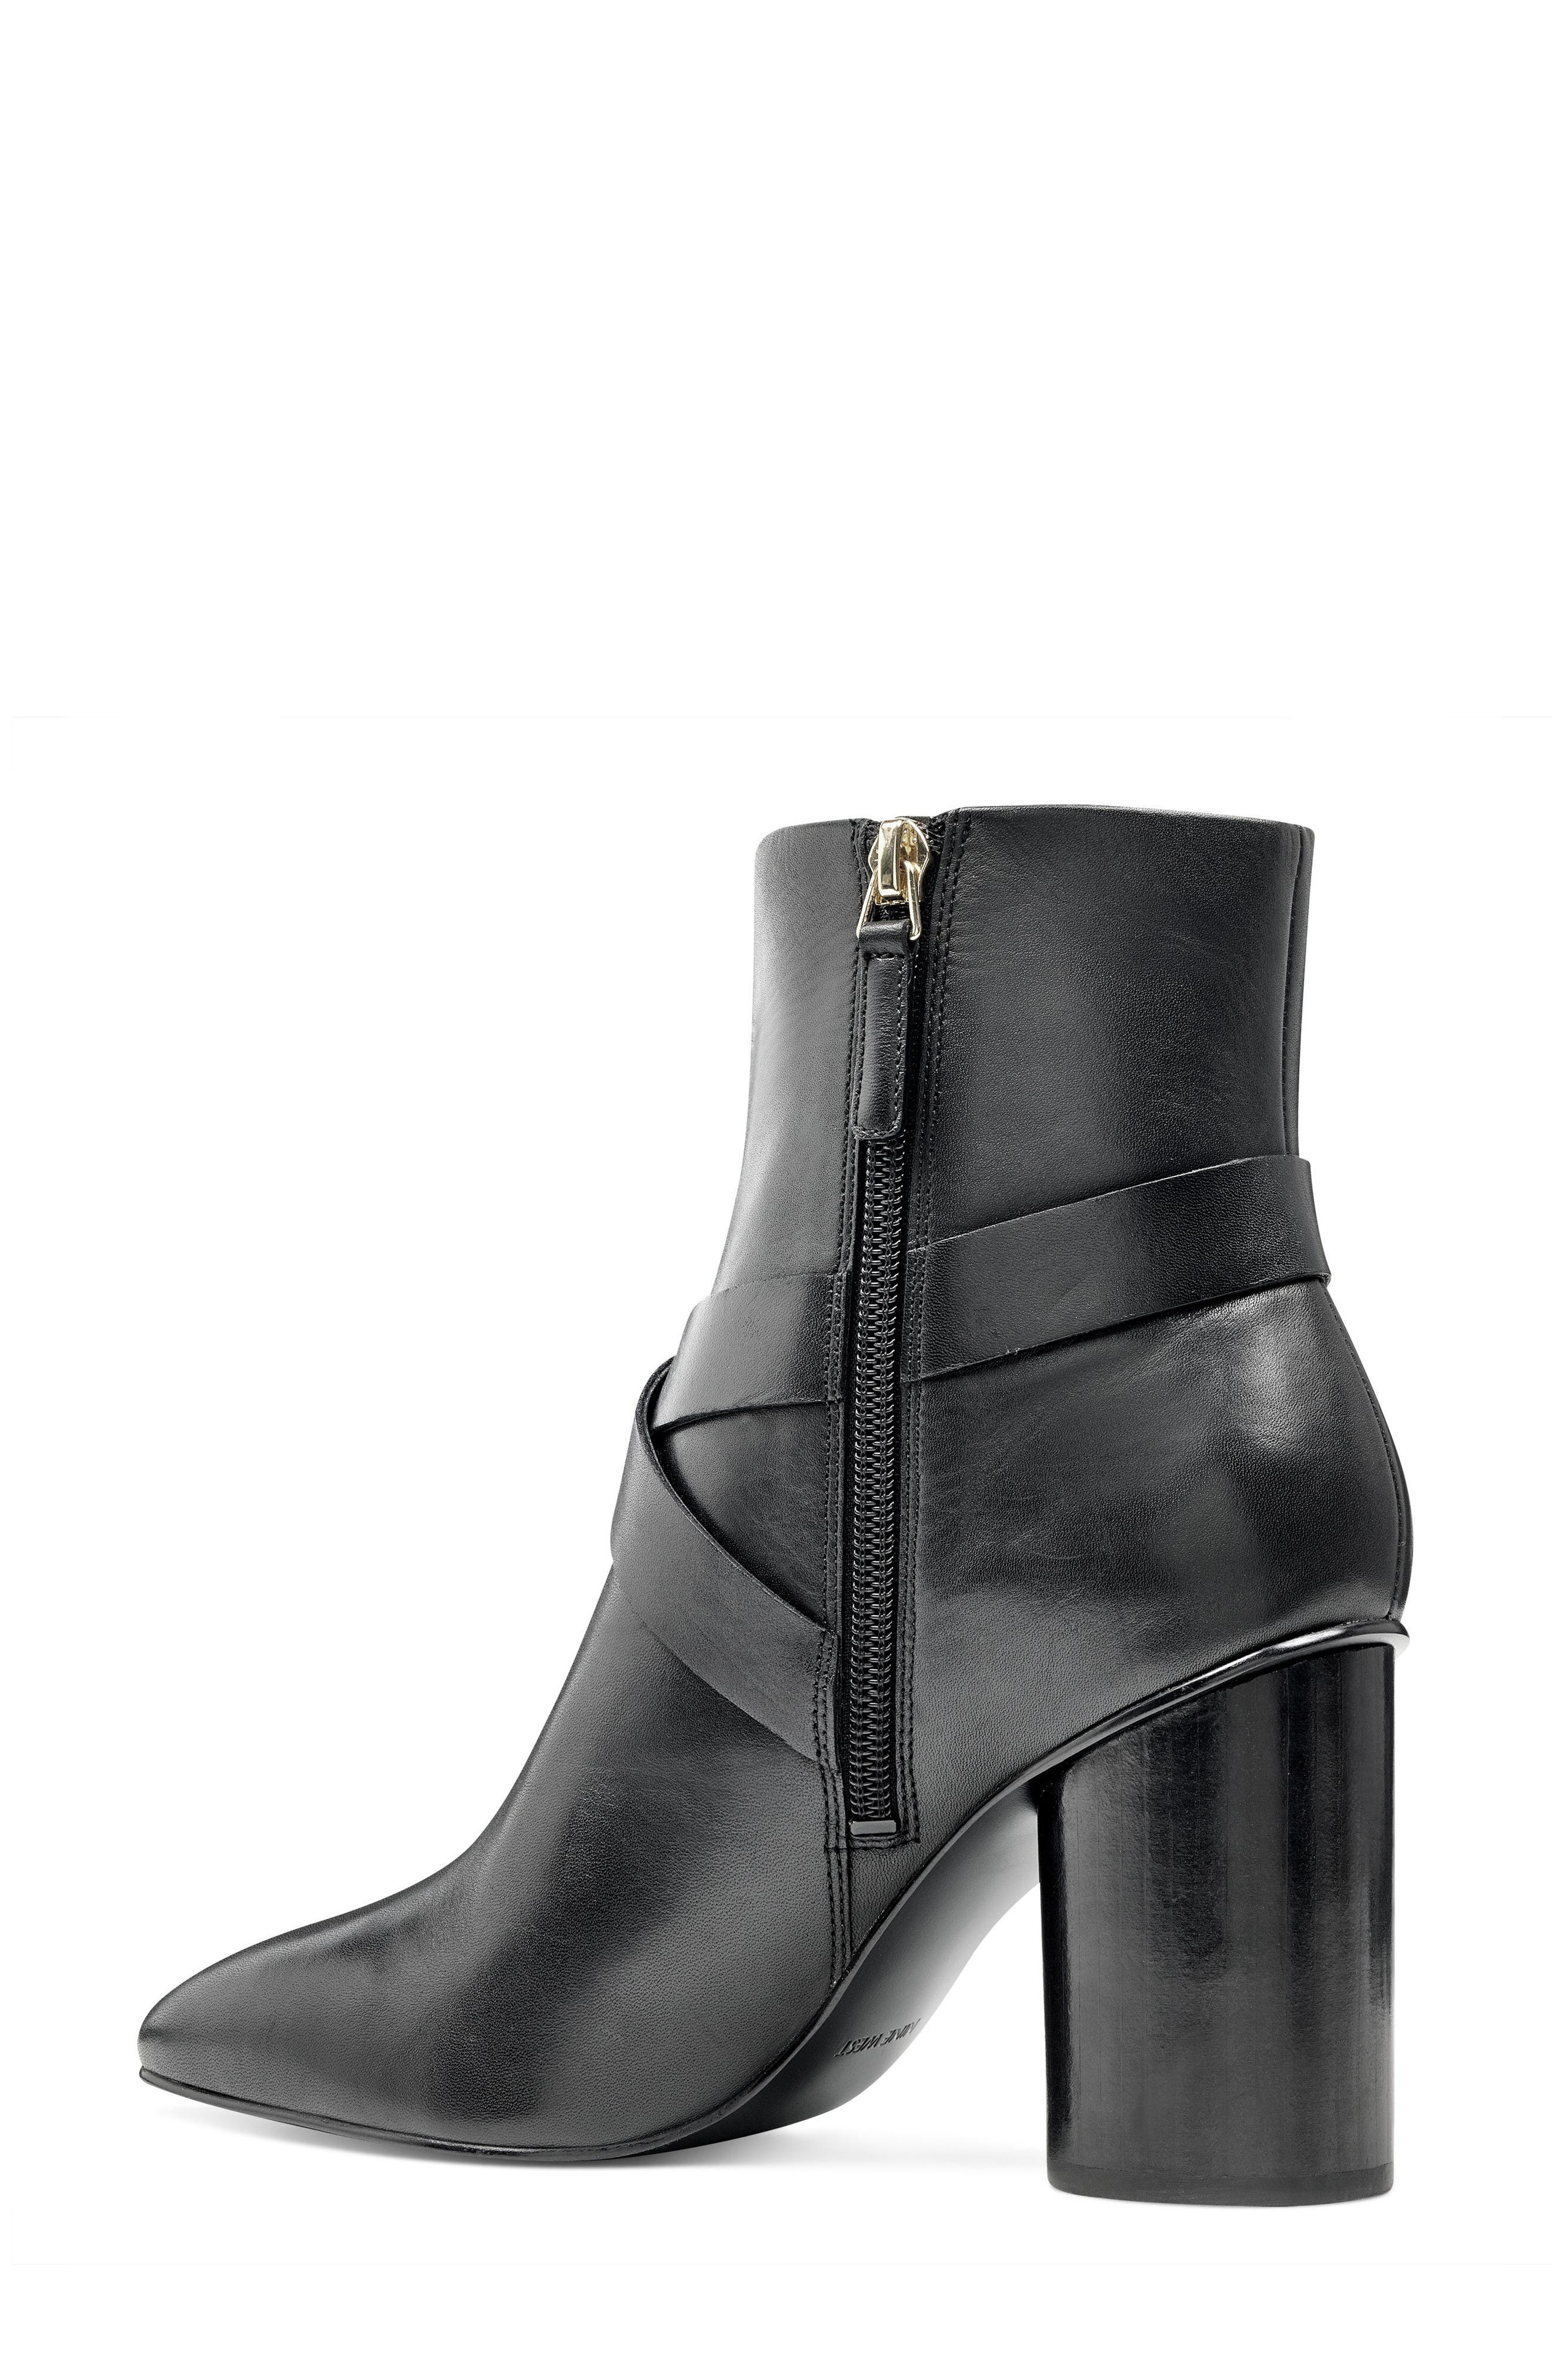 Cavanagh Pointy Toe Bootie,                             Alternate thumbnail 2, color,                             001